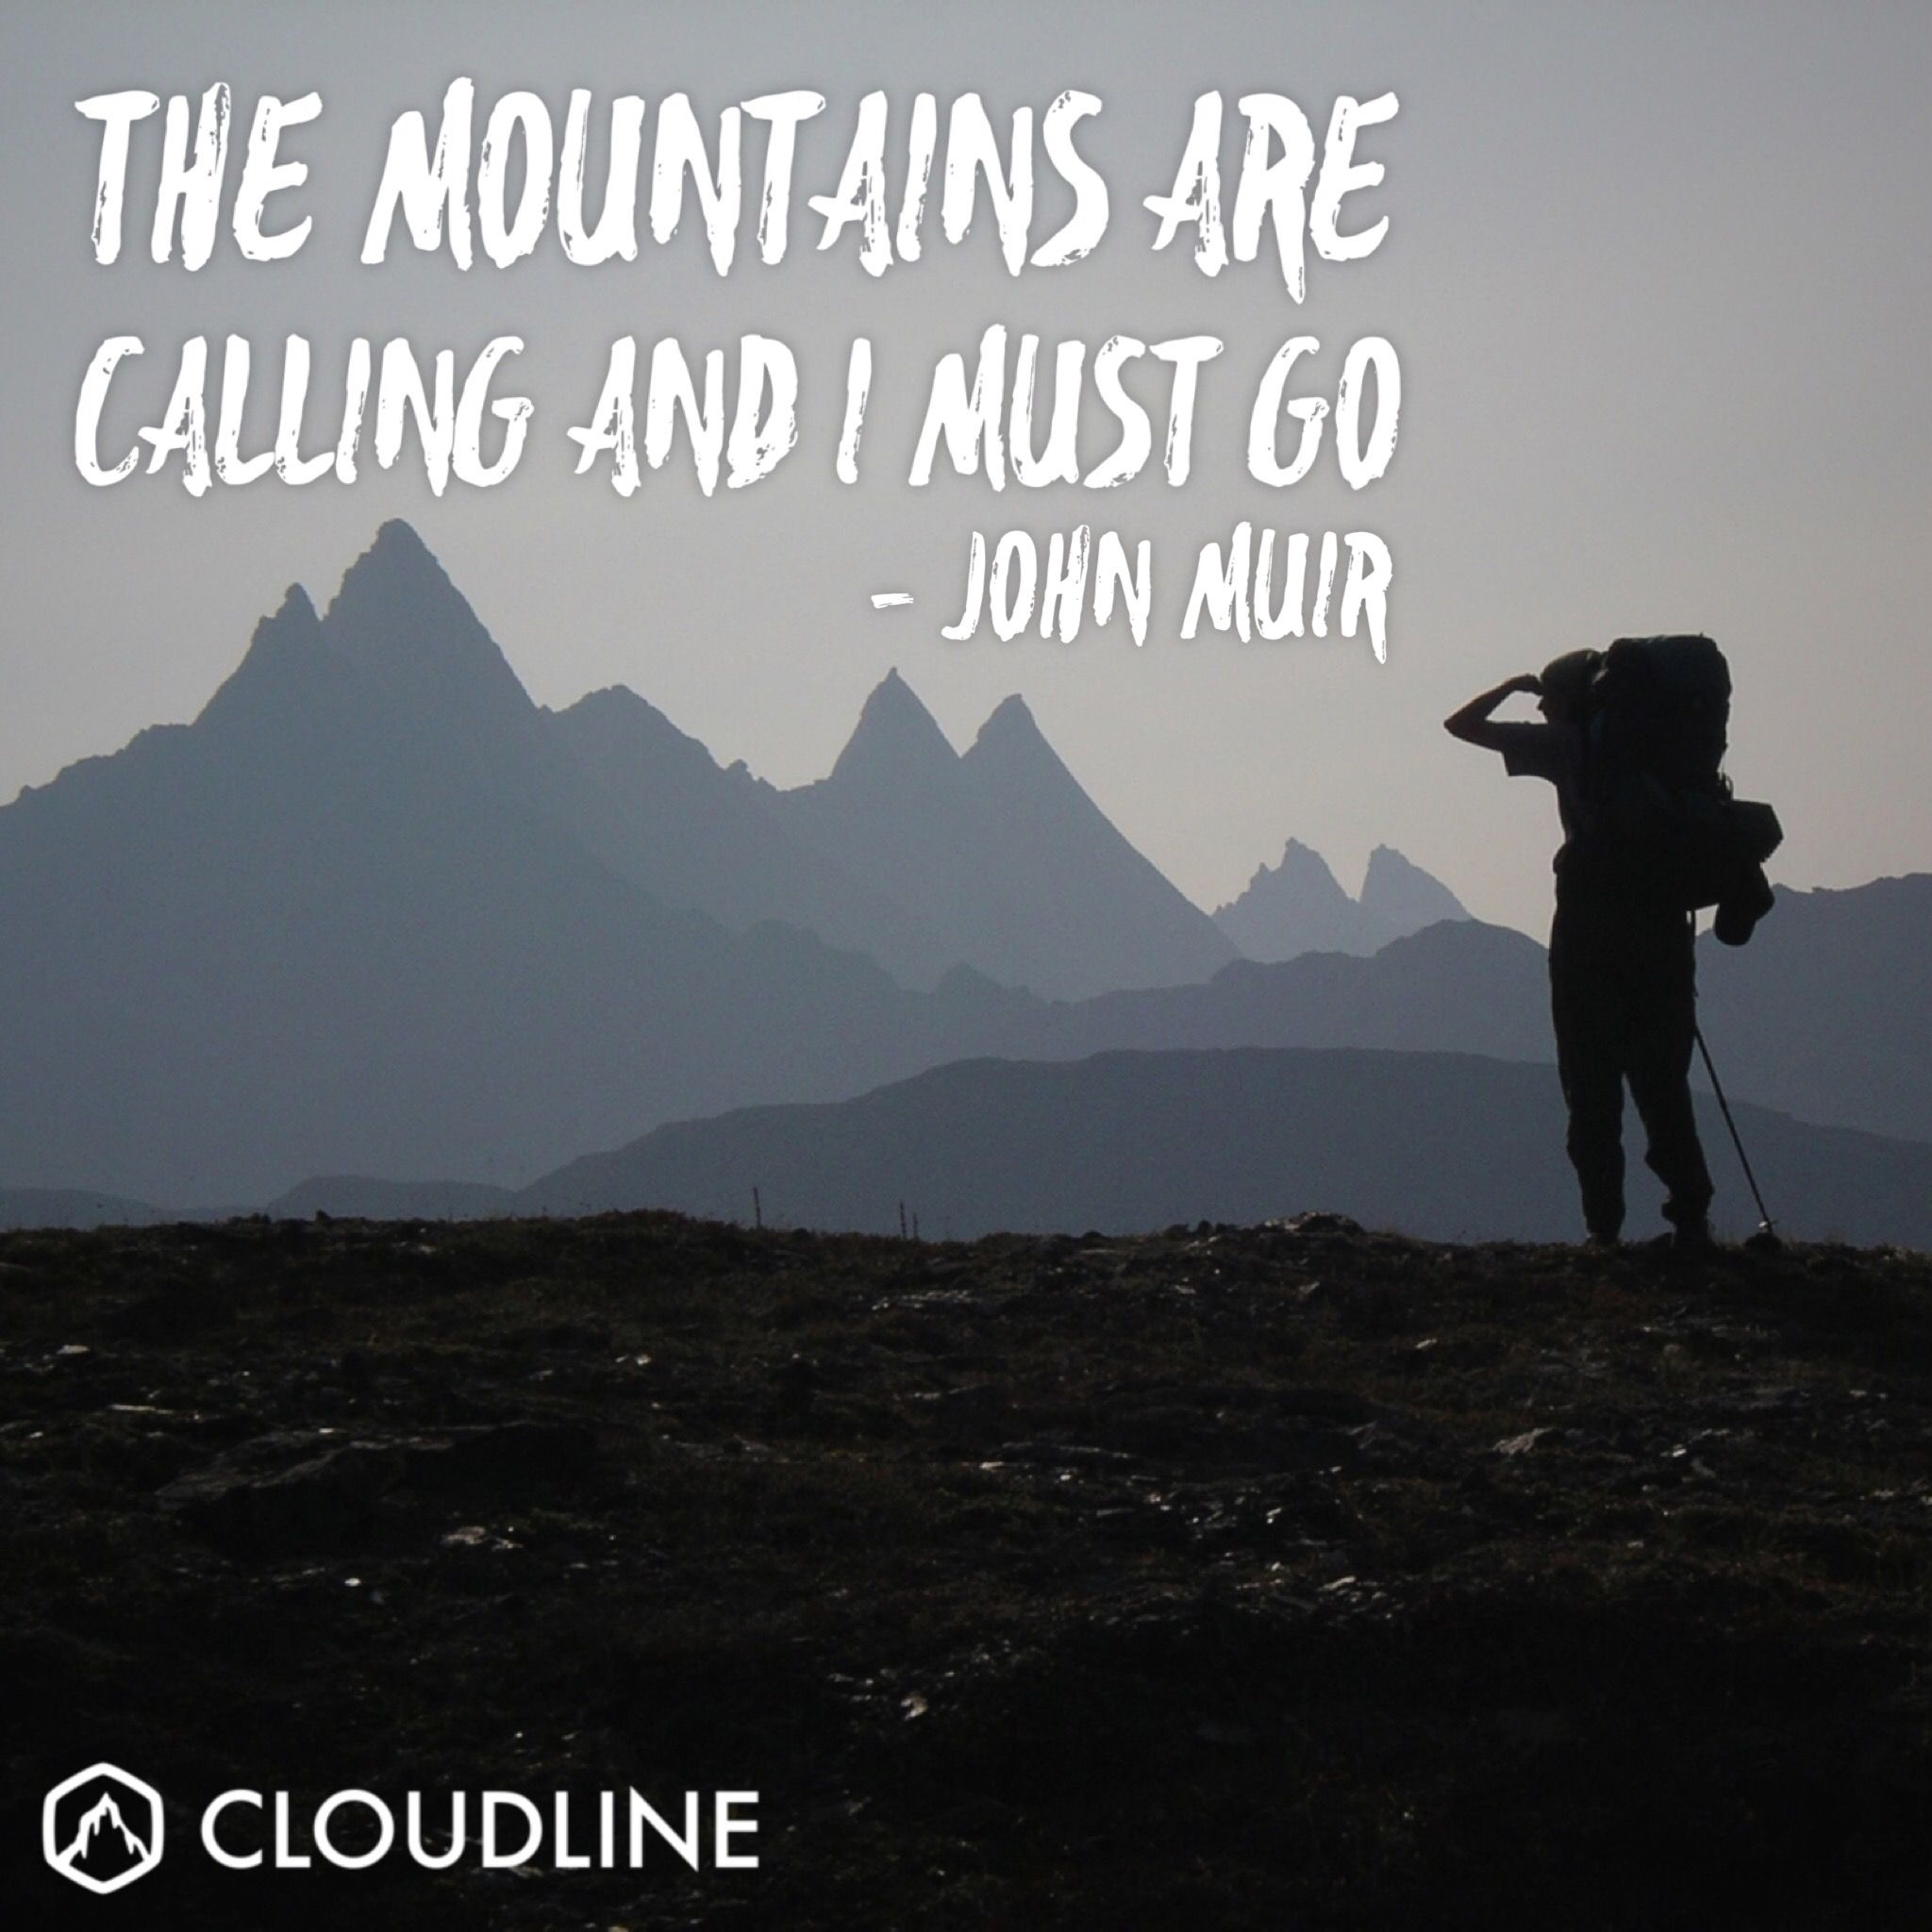 John Muir Quotes That Will Make You Want To Get Outside And